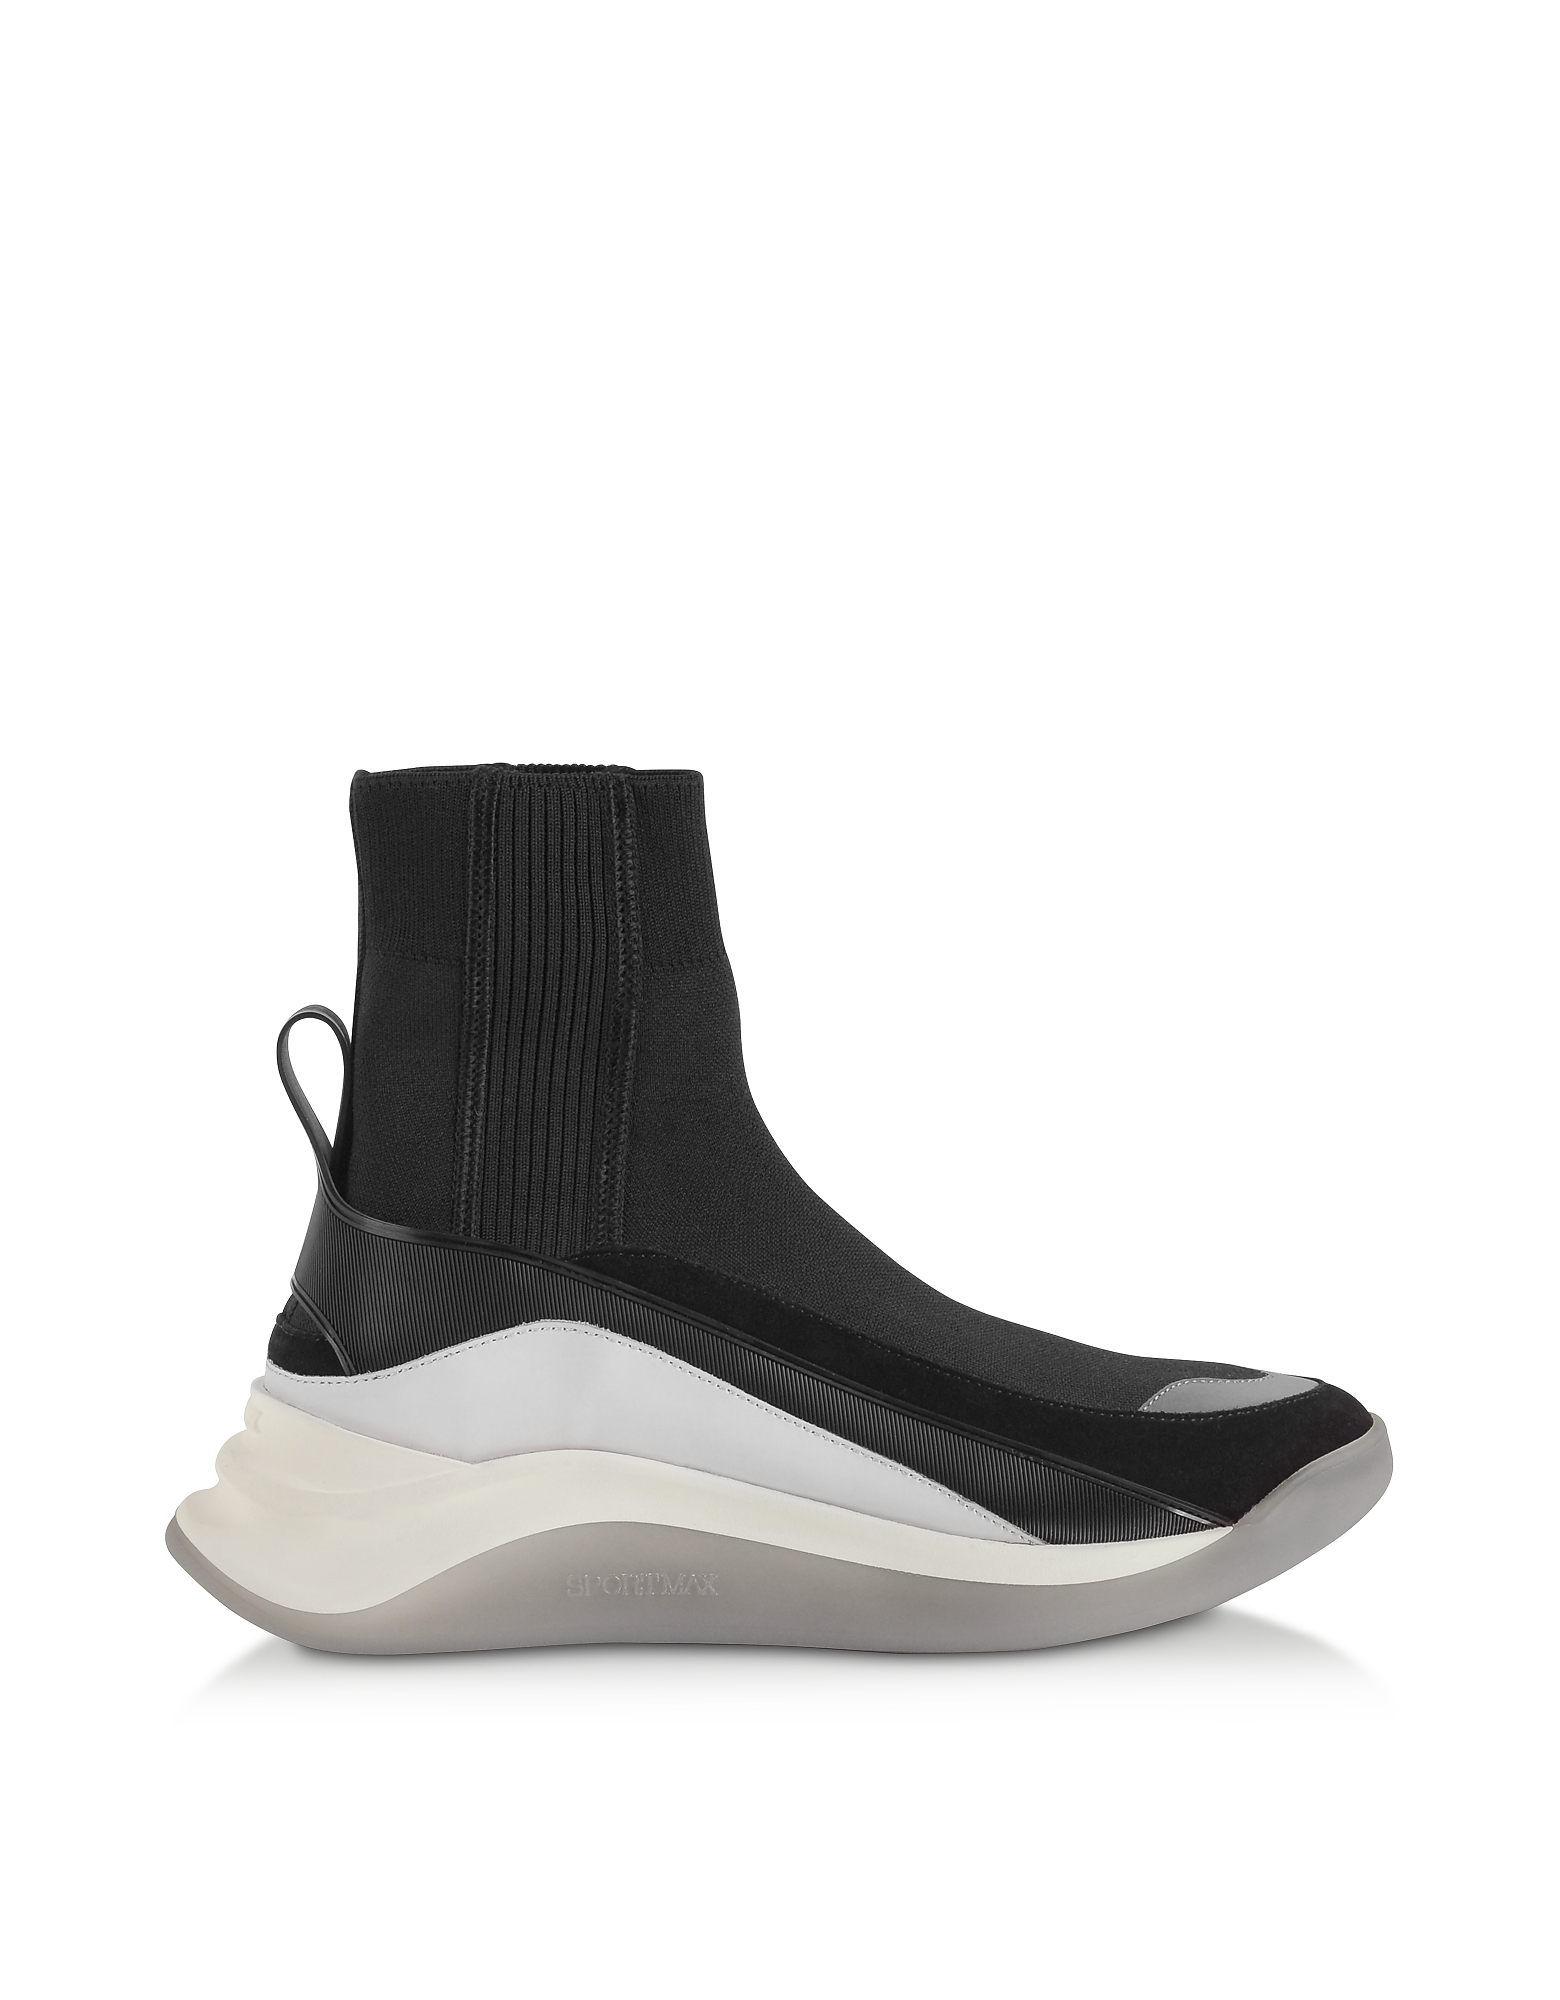 SportMax Designer Shoes, Black Ovada Pull-On Sneakers